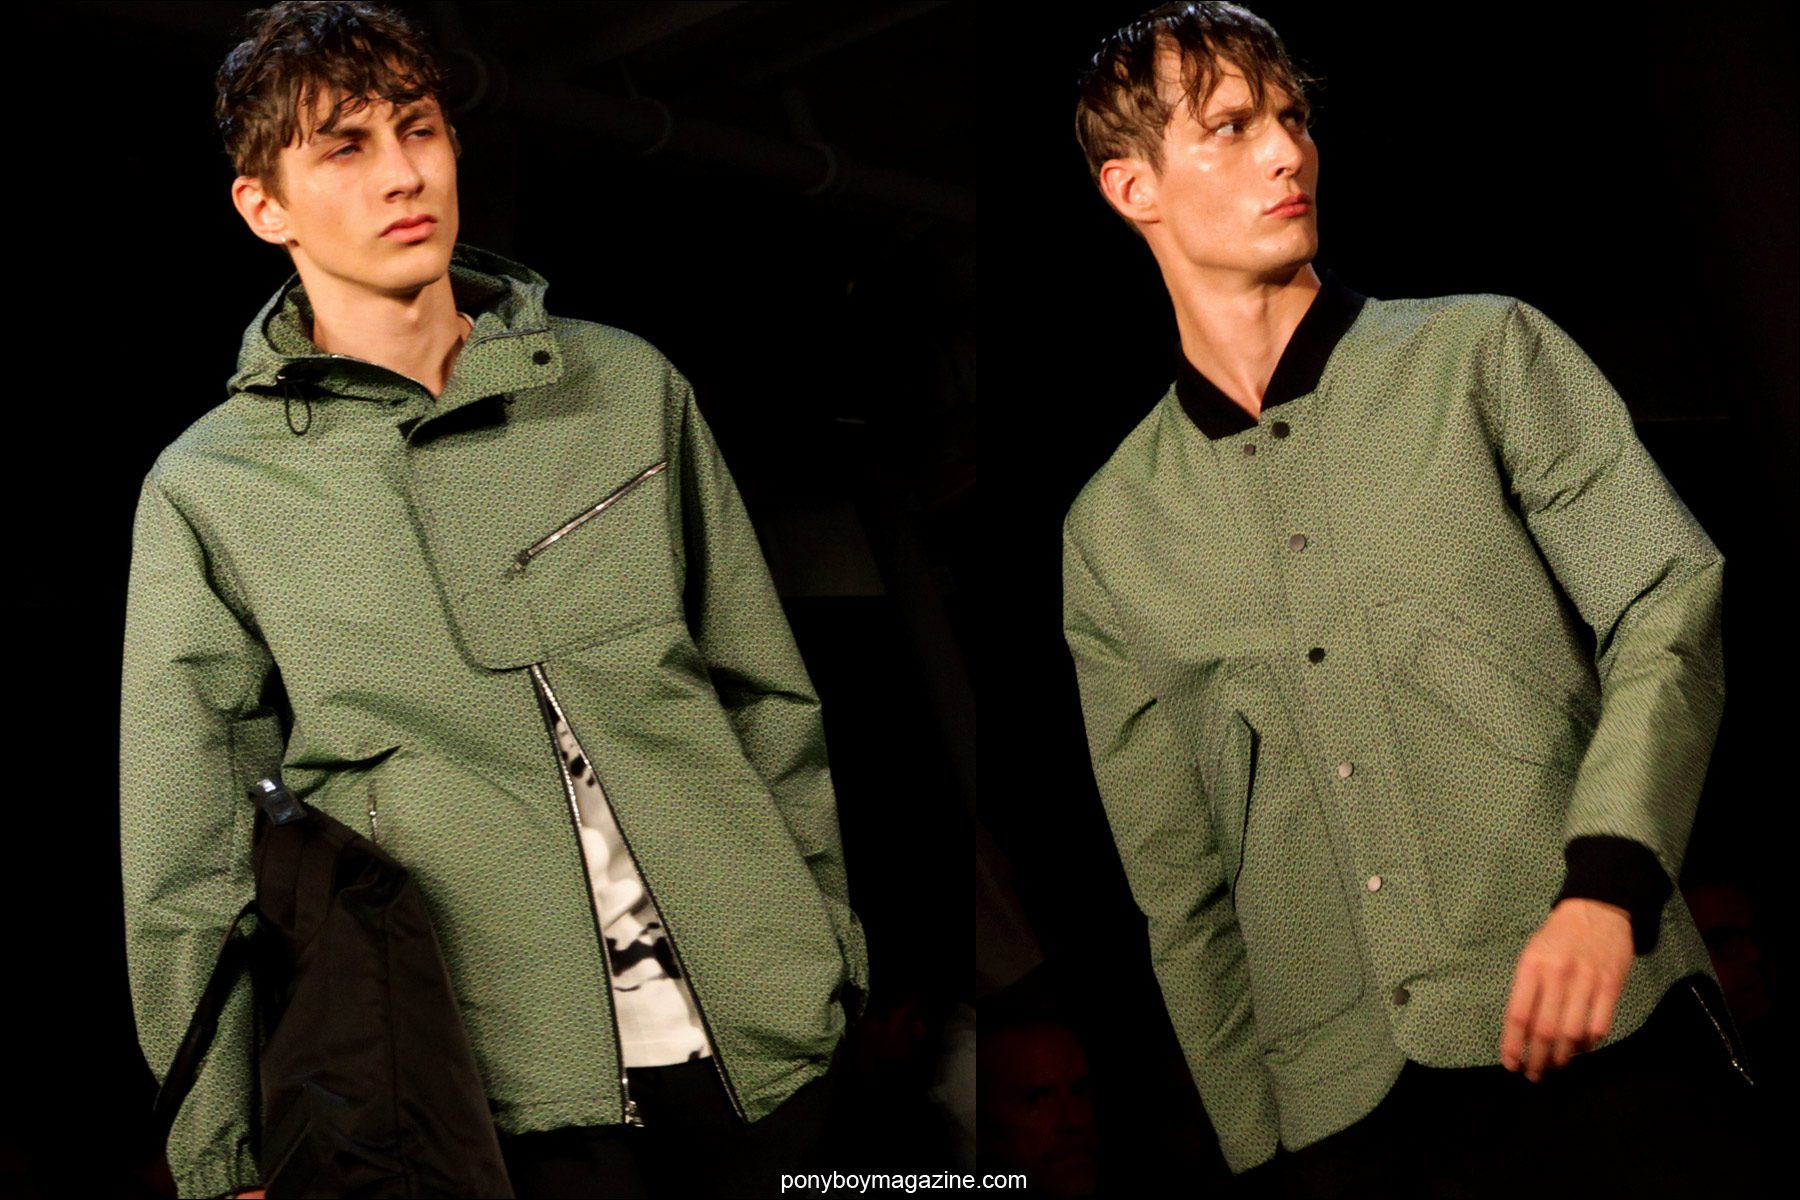 Menswear by Tim Coppens S/S15 , at Milk Studios in New York. Photos for Ponyboy Magazine by Alexander Thompson.